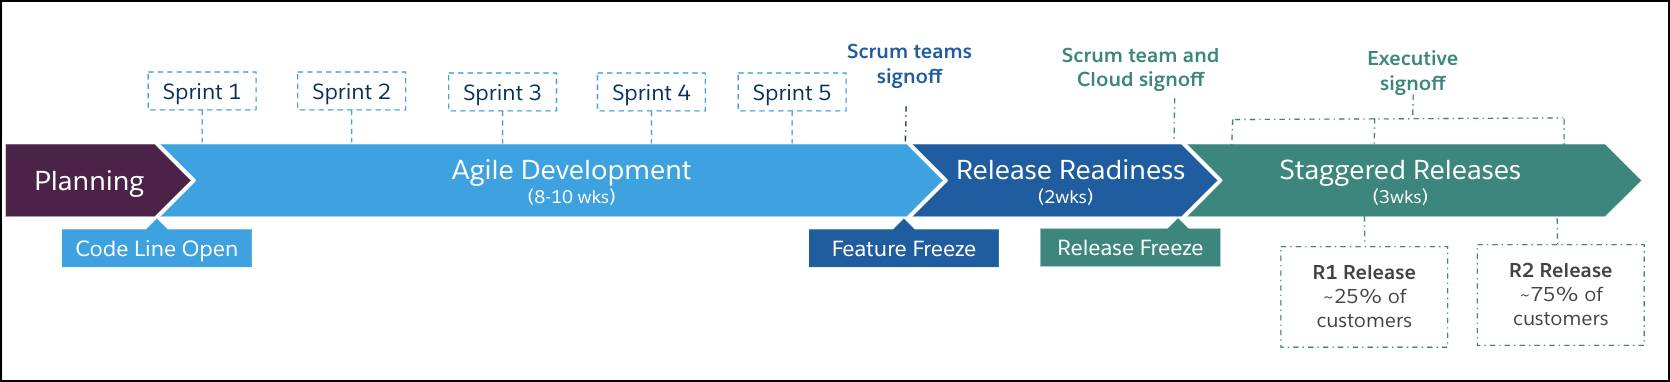 Lifecycle phases of a major release cycle.